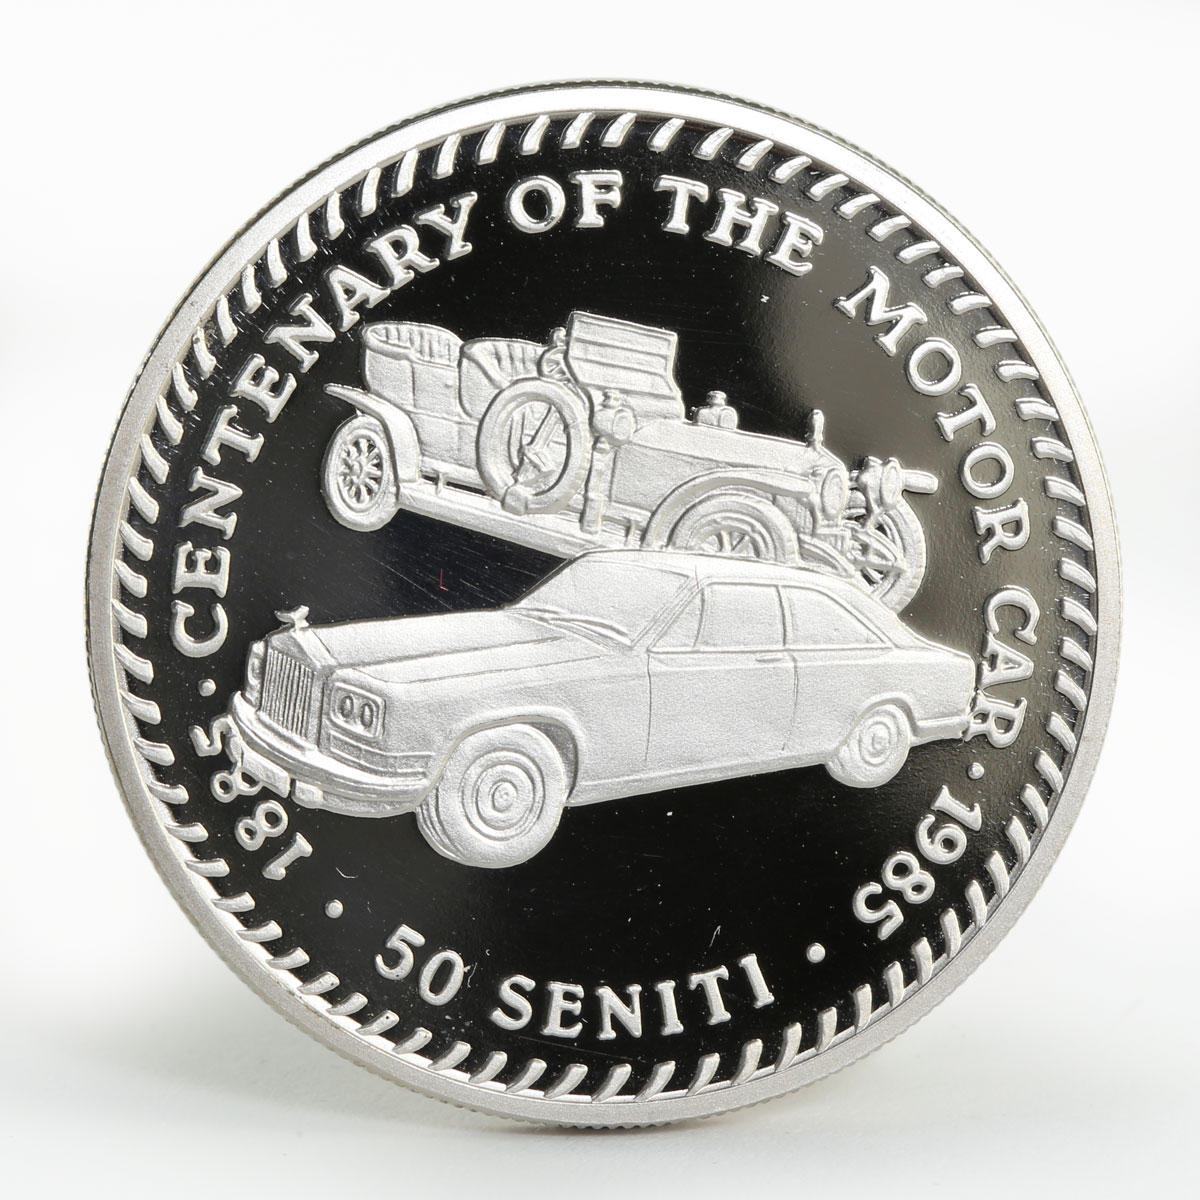 Tonga 50 seniti Rolls Royce cars proof copper-nickel coin 1985